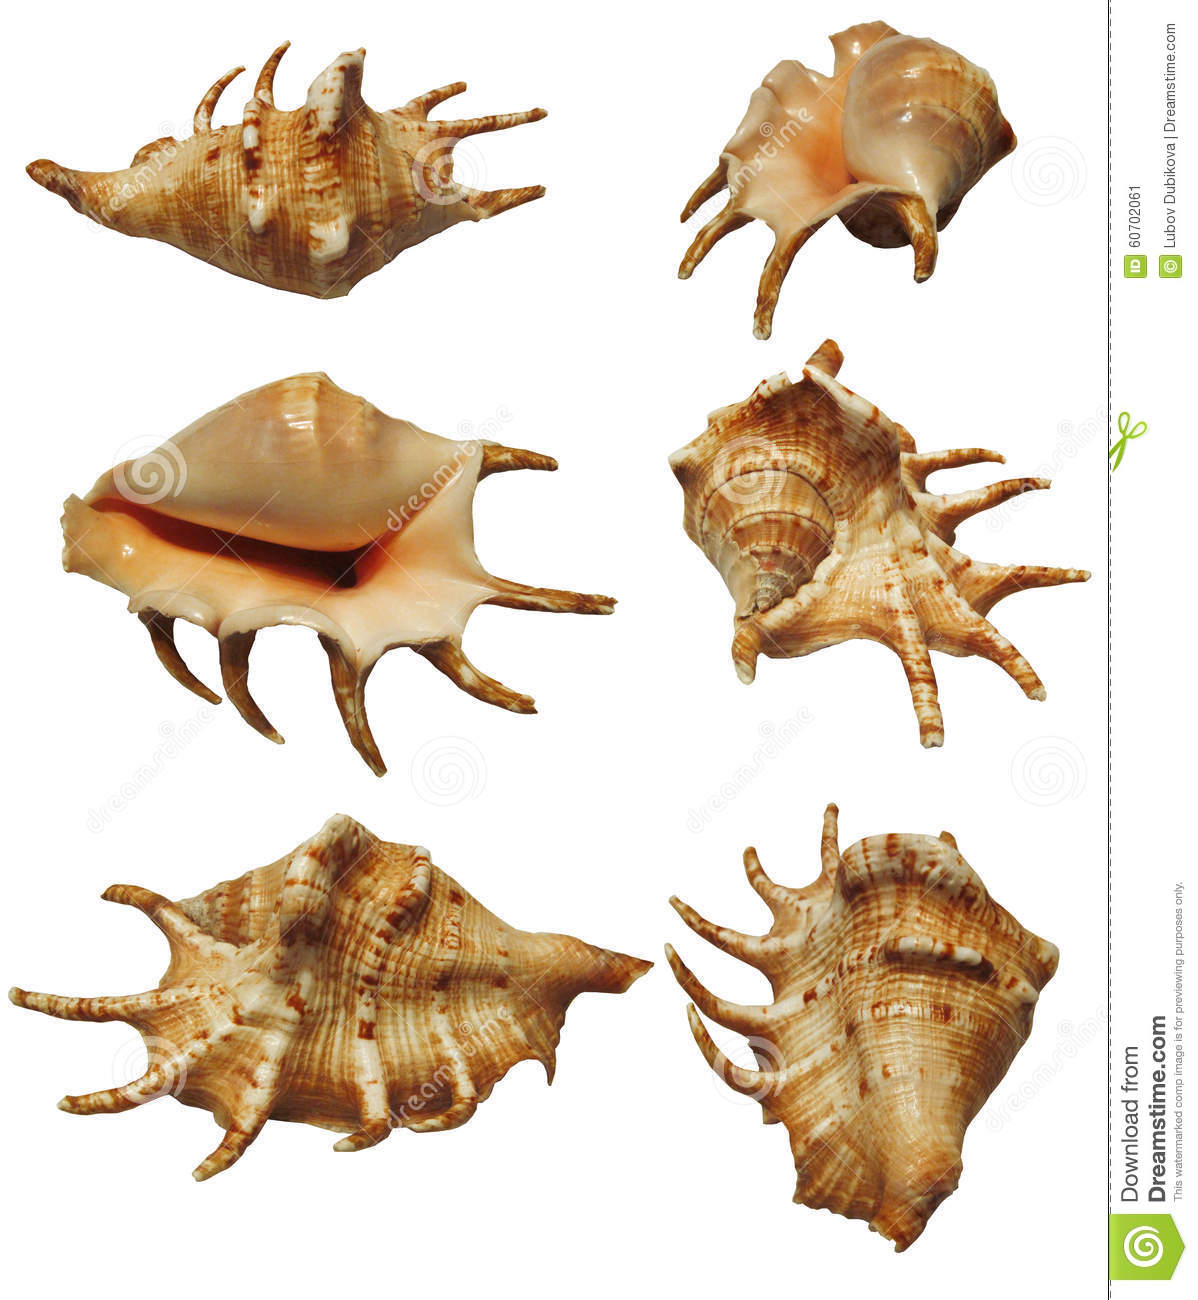 What type of shell is this